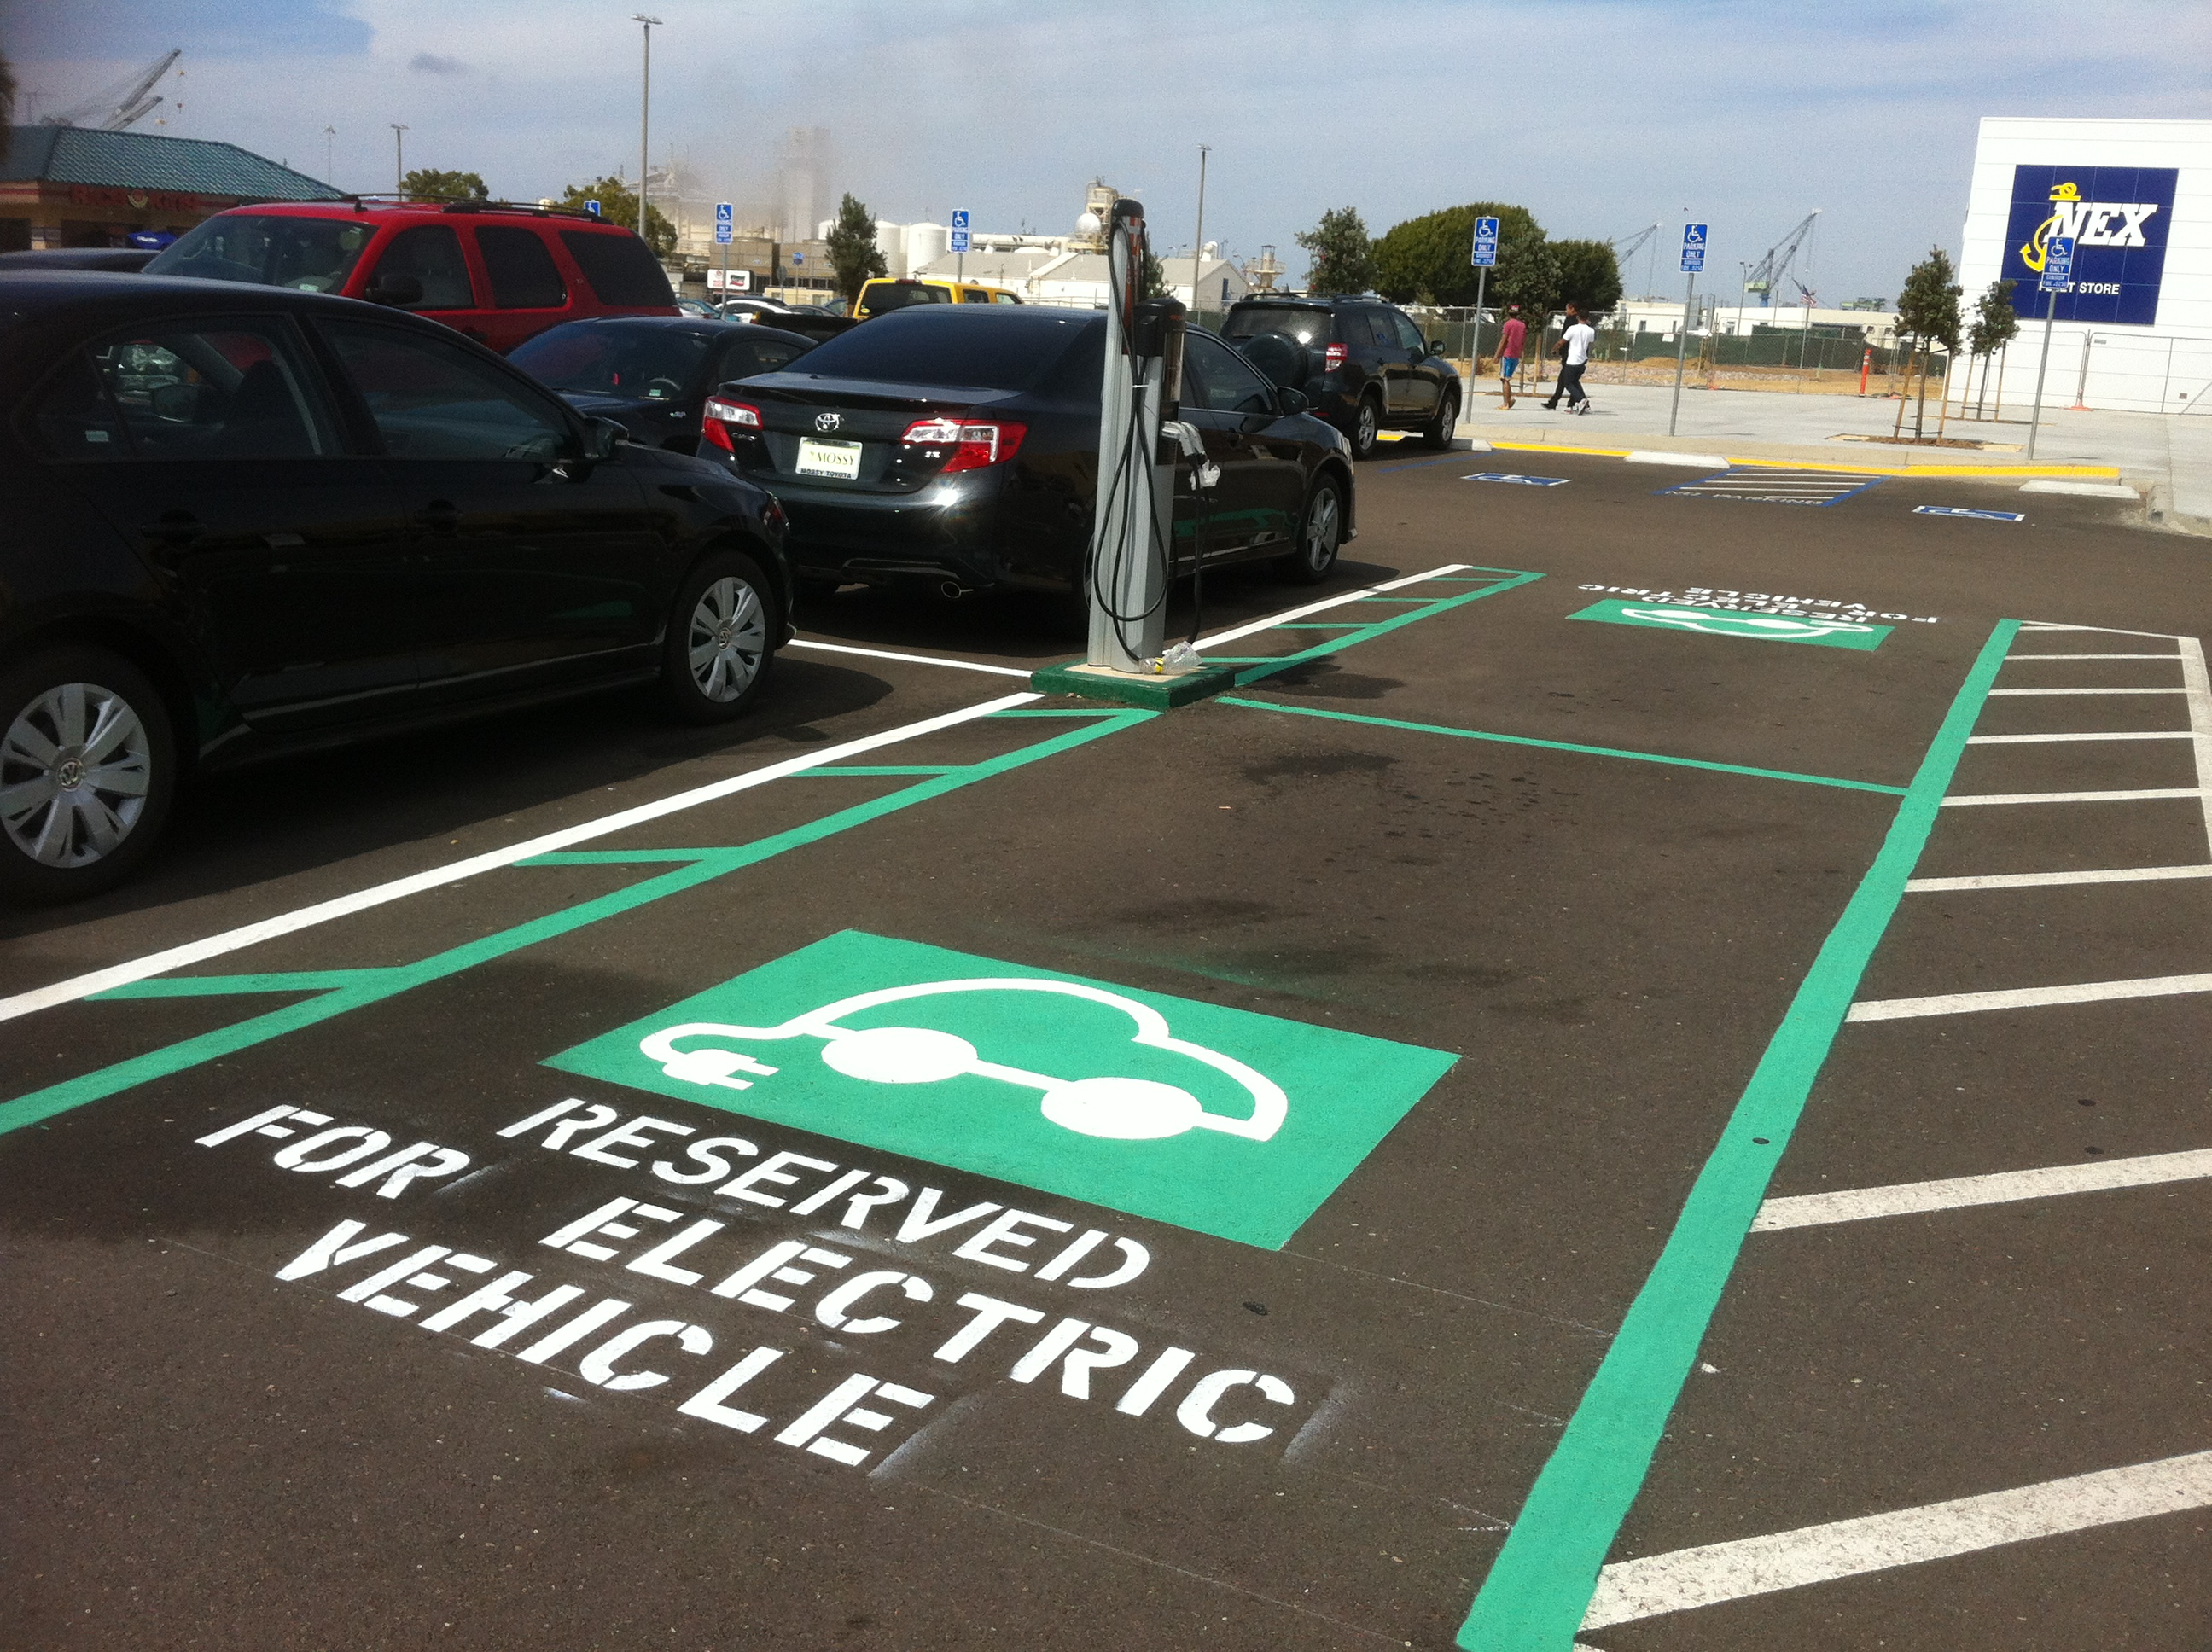 Reserved Parking Space for EV Vehicles